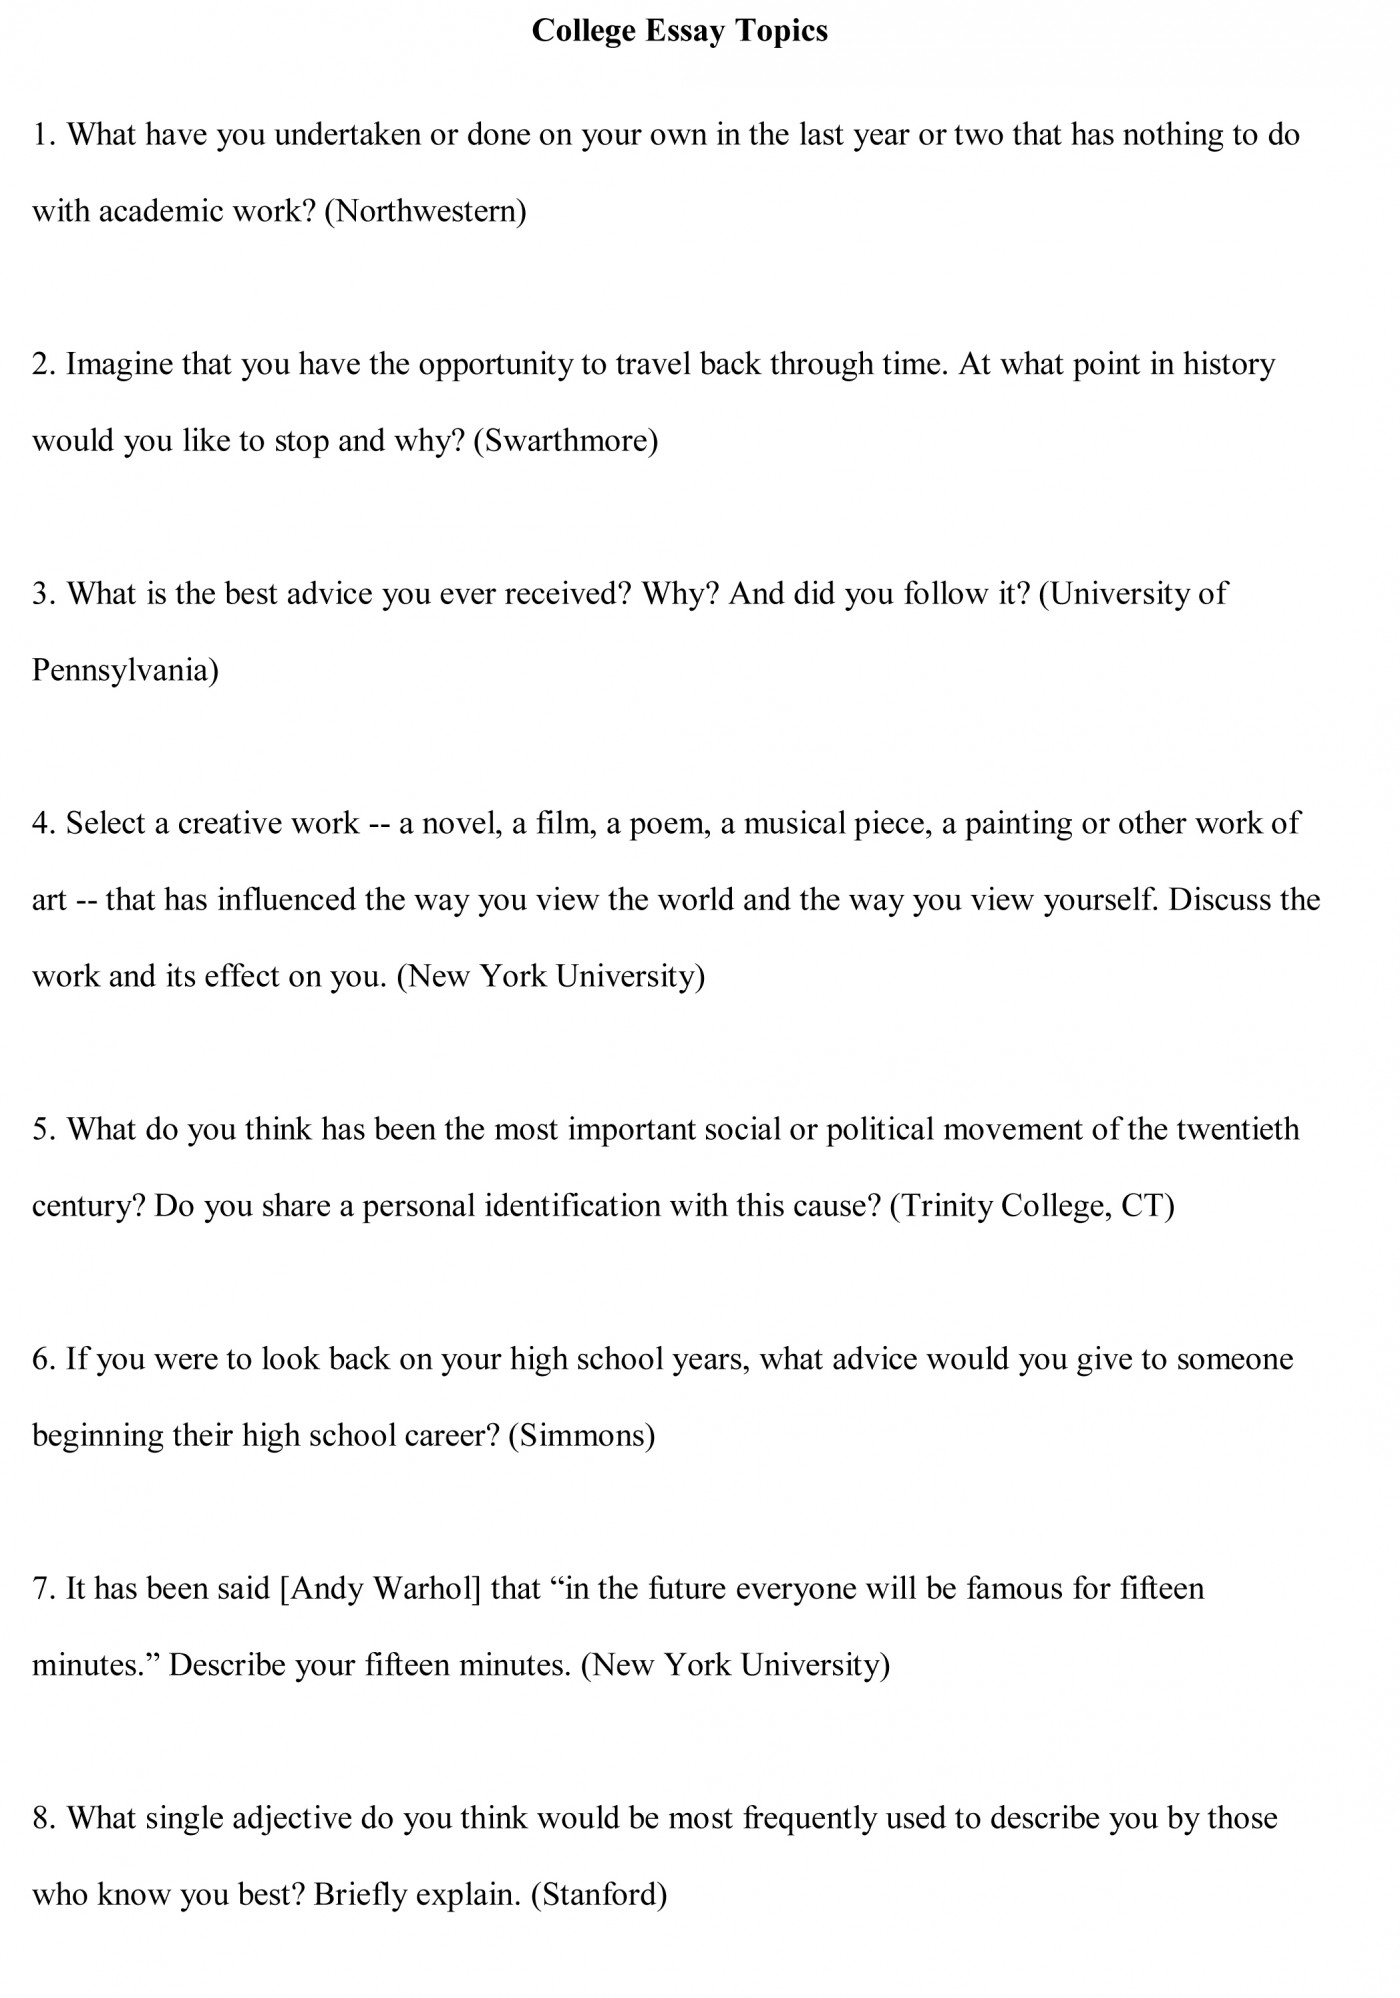 003 College Essay Topics Free Sample1 Prompts Impressive Writing Prompt Examples Amherst 2017 Pomona 1400